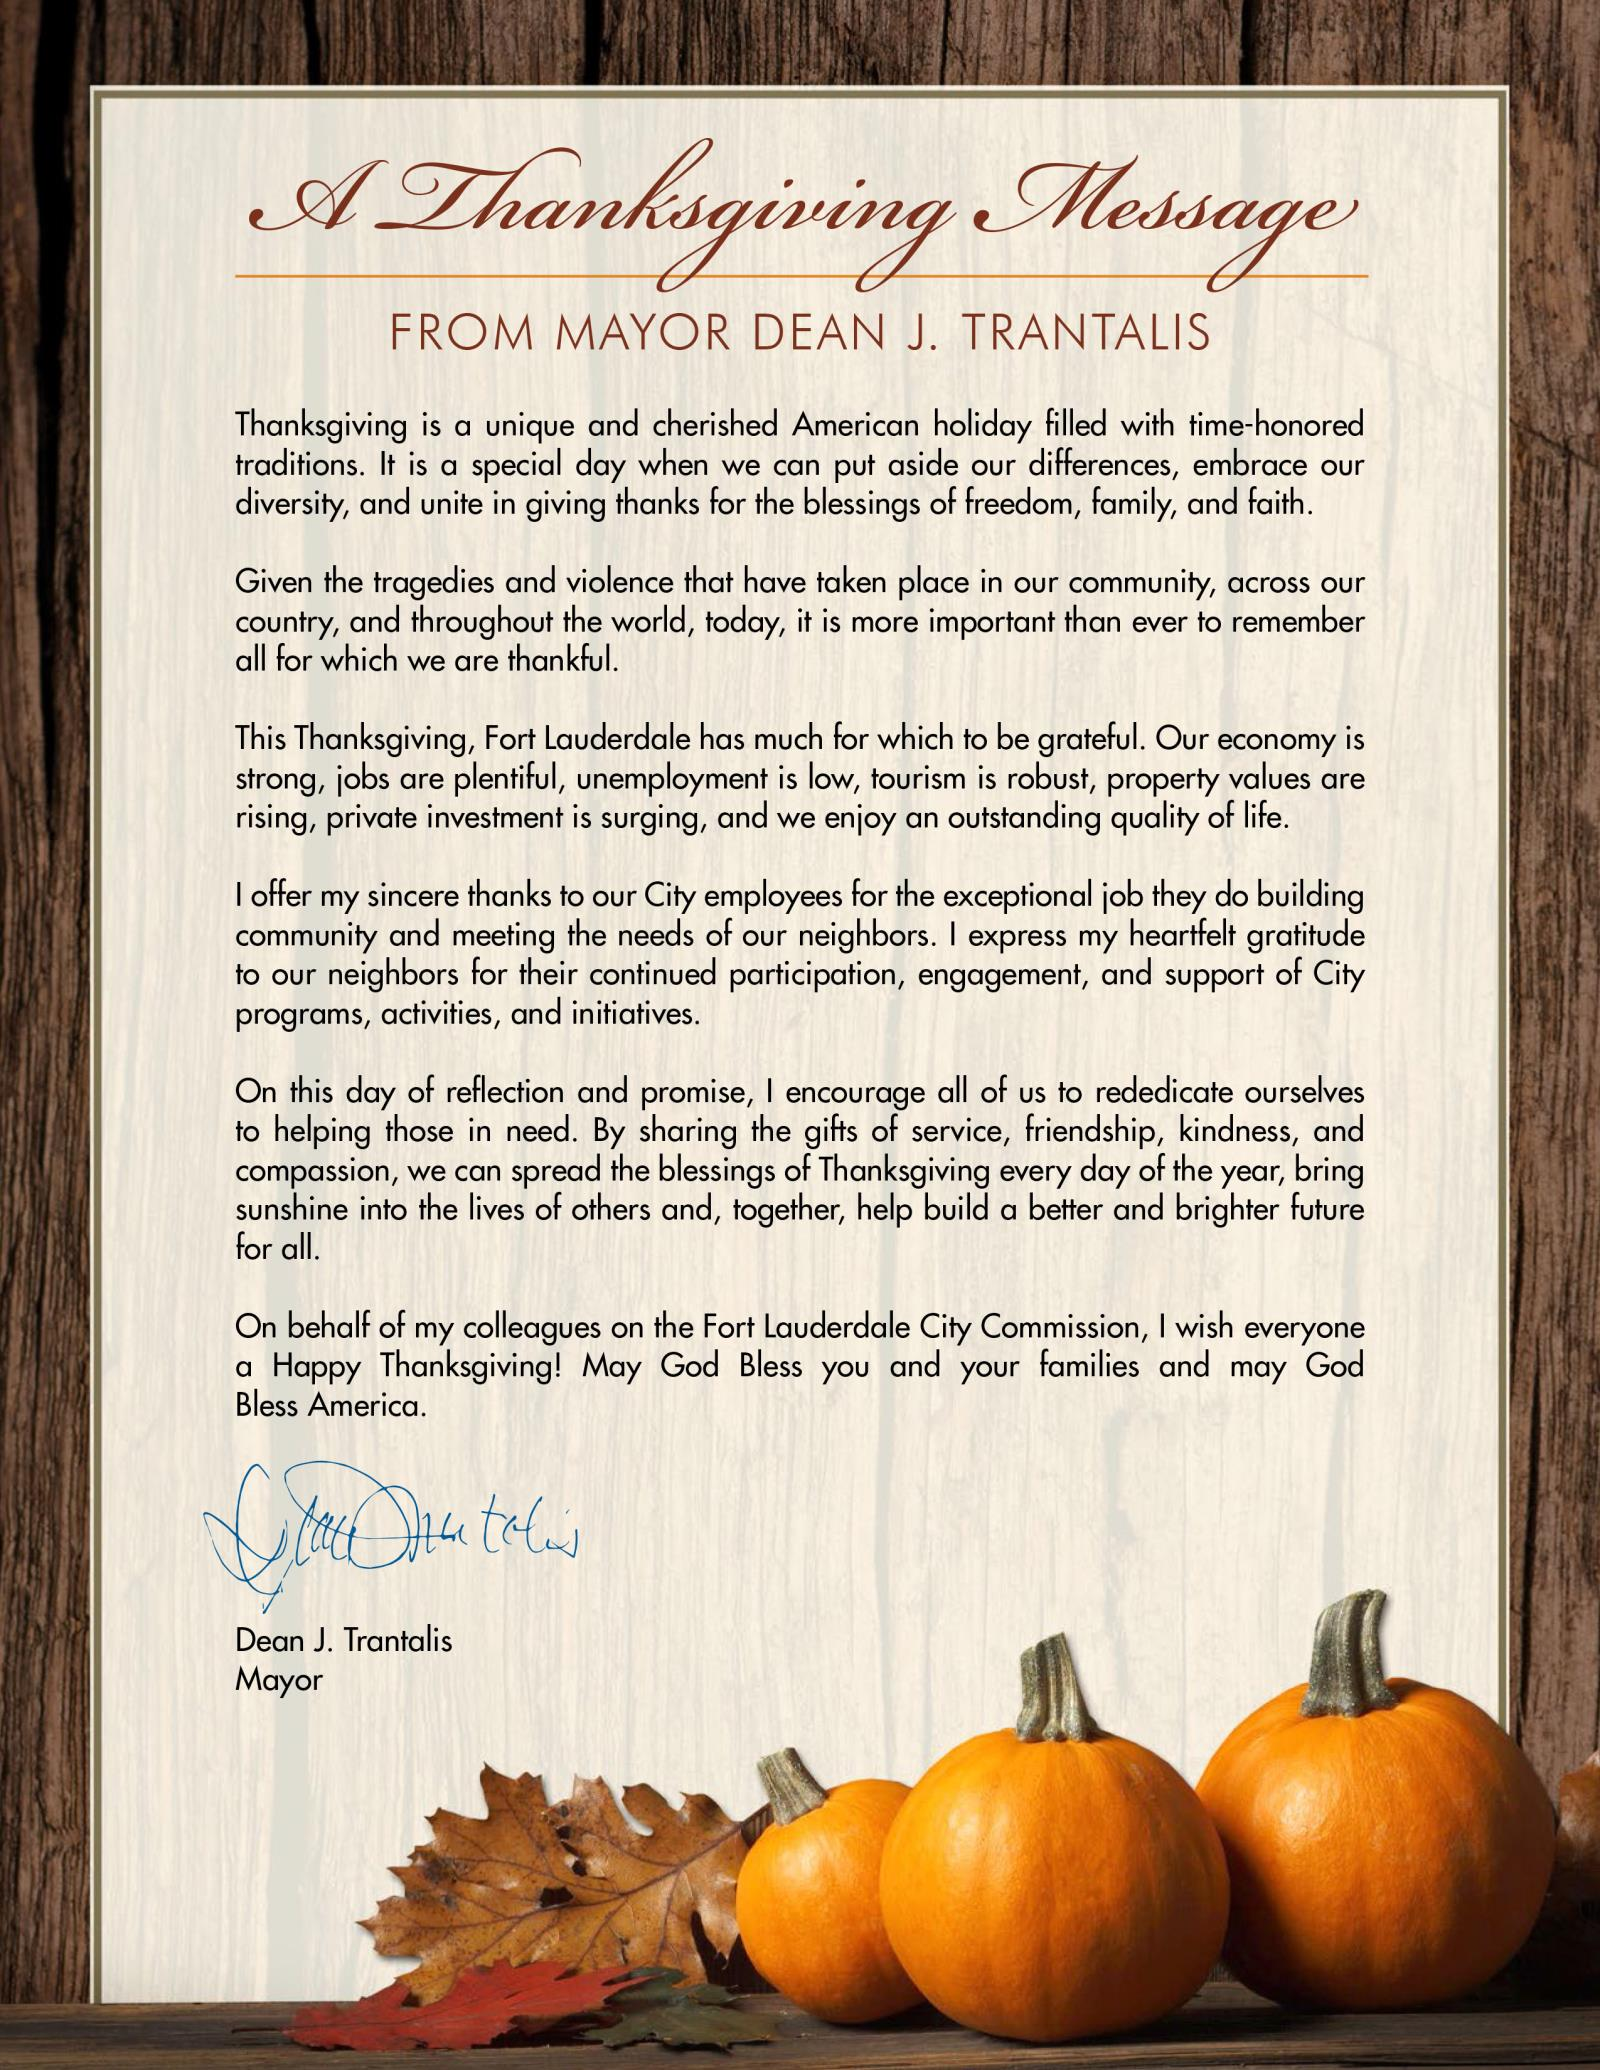 a thanksgiving message from mayor dean j trantalis